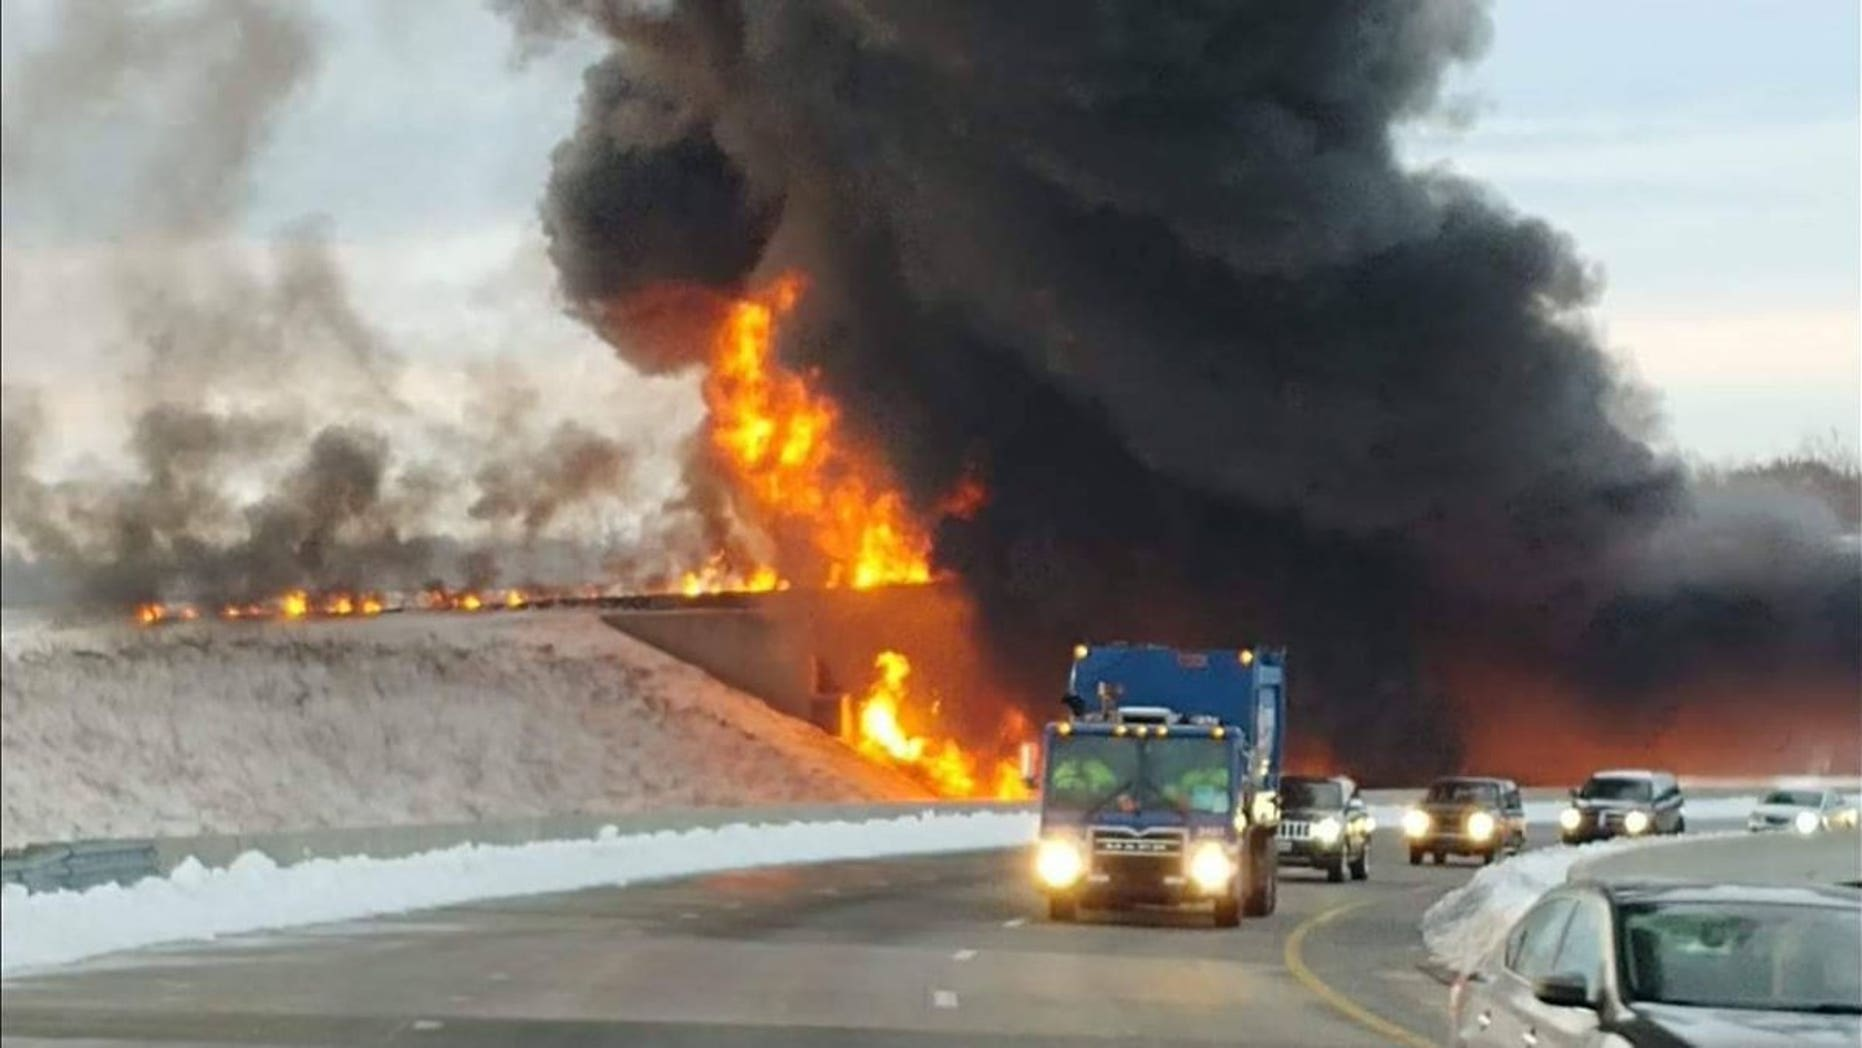 Flames engulfed portions of I-73 in North Carolina on Dec. 13 after a tractor-trailer carrying 8,500 pounds of gas flipped over.